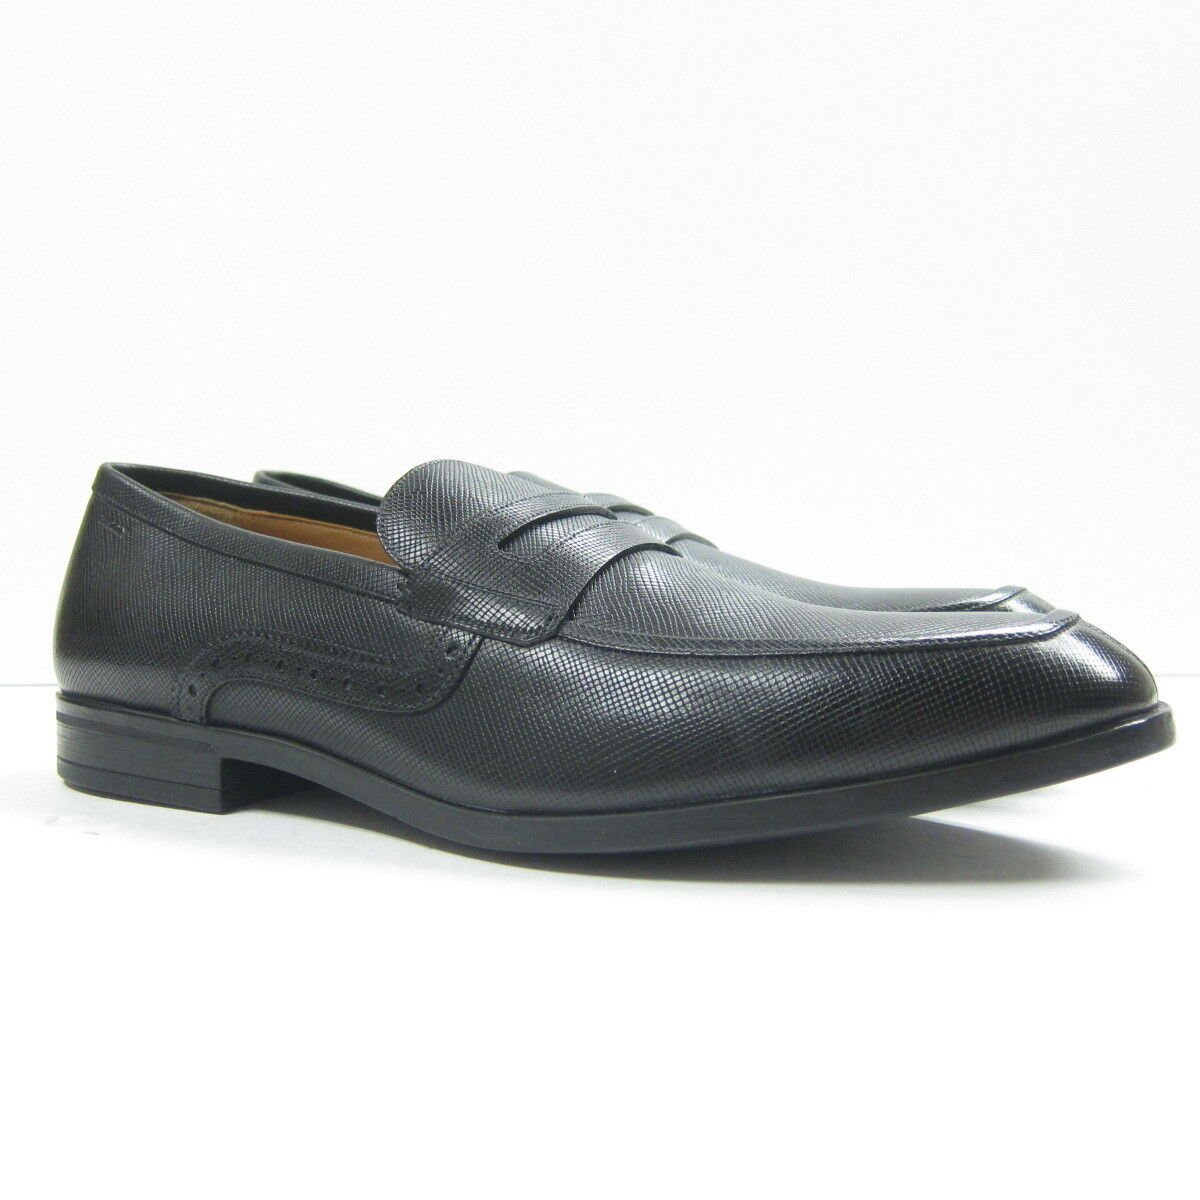 P-380186 New Bally Black Calf Print Washed Dress Loafers shoes Size US 11 EUR 44